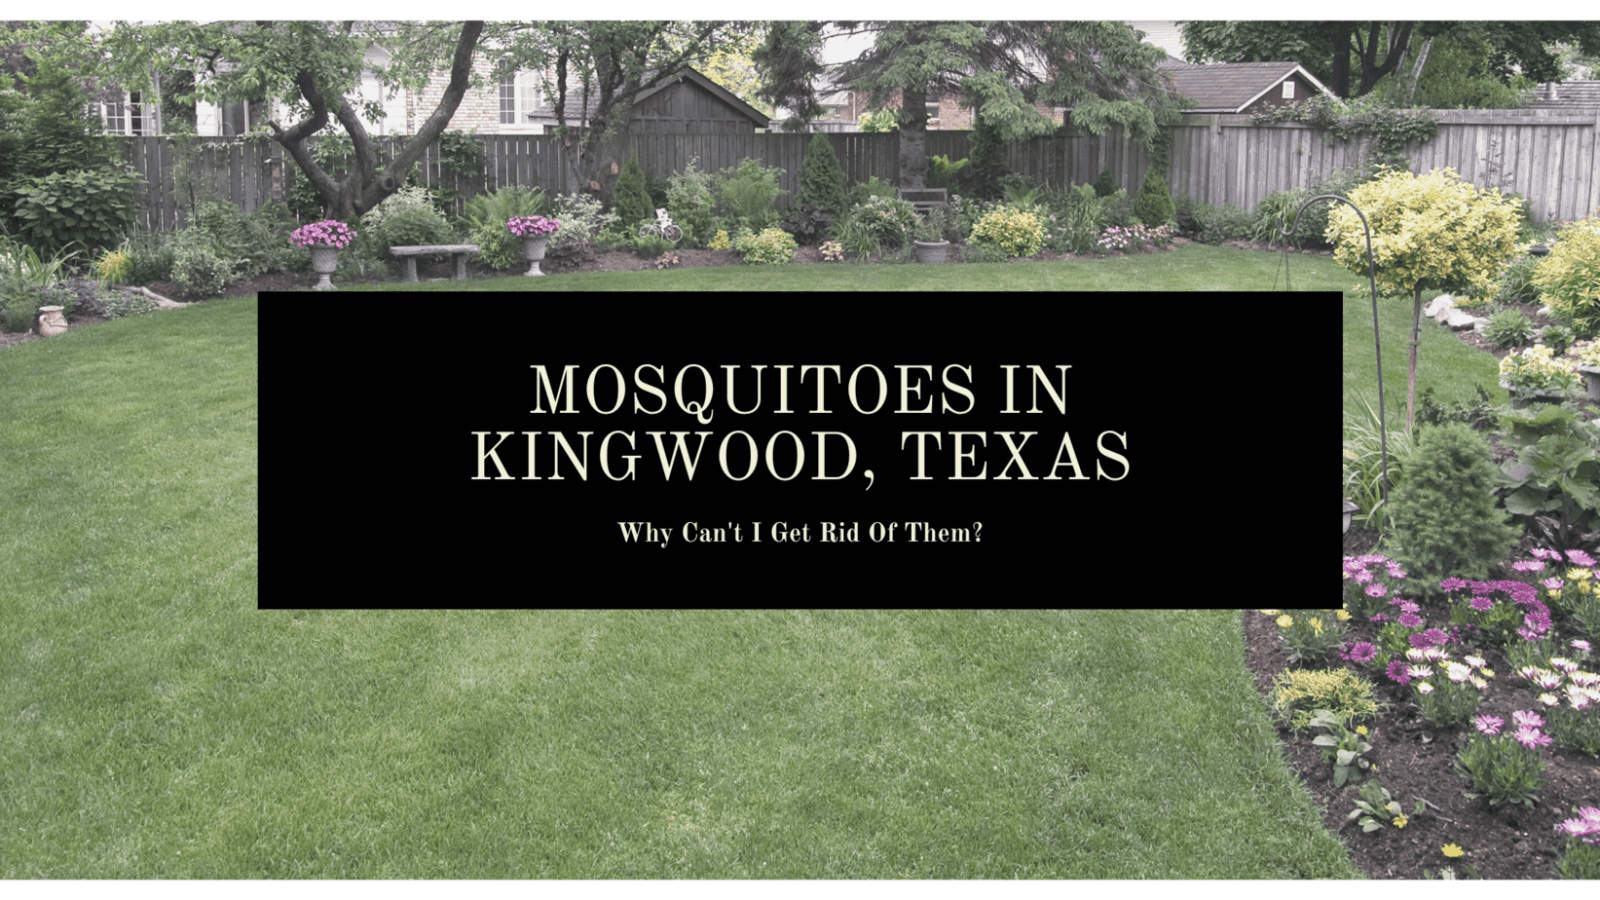 Why Can't I Get Rid of Mosquitoes in My Kingwood, Texas ...